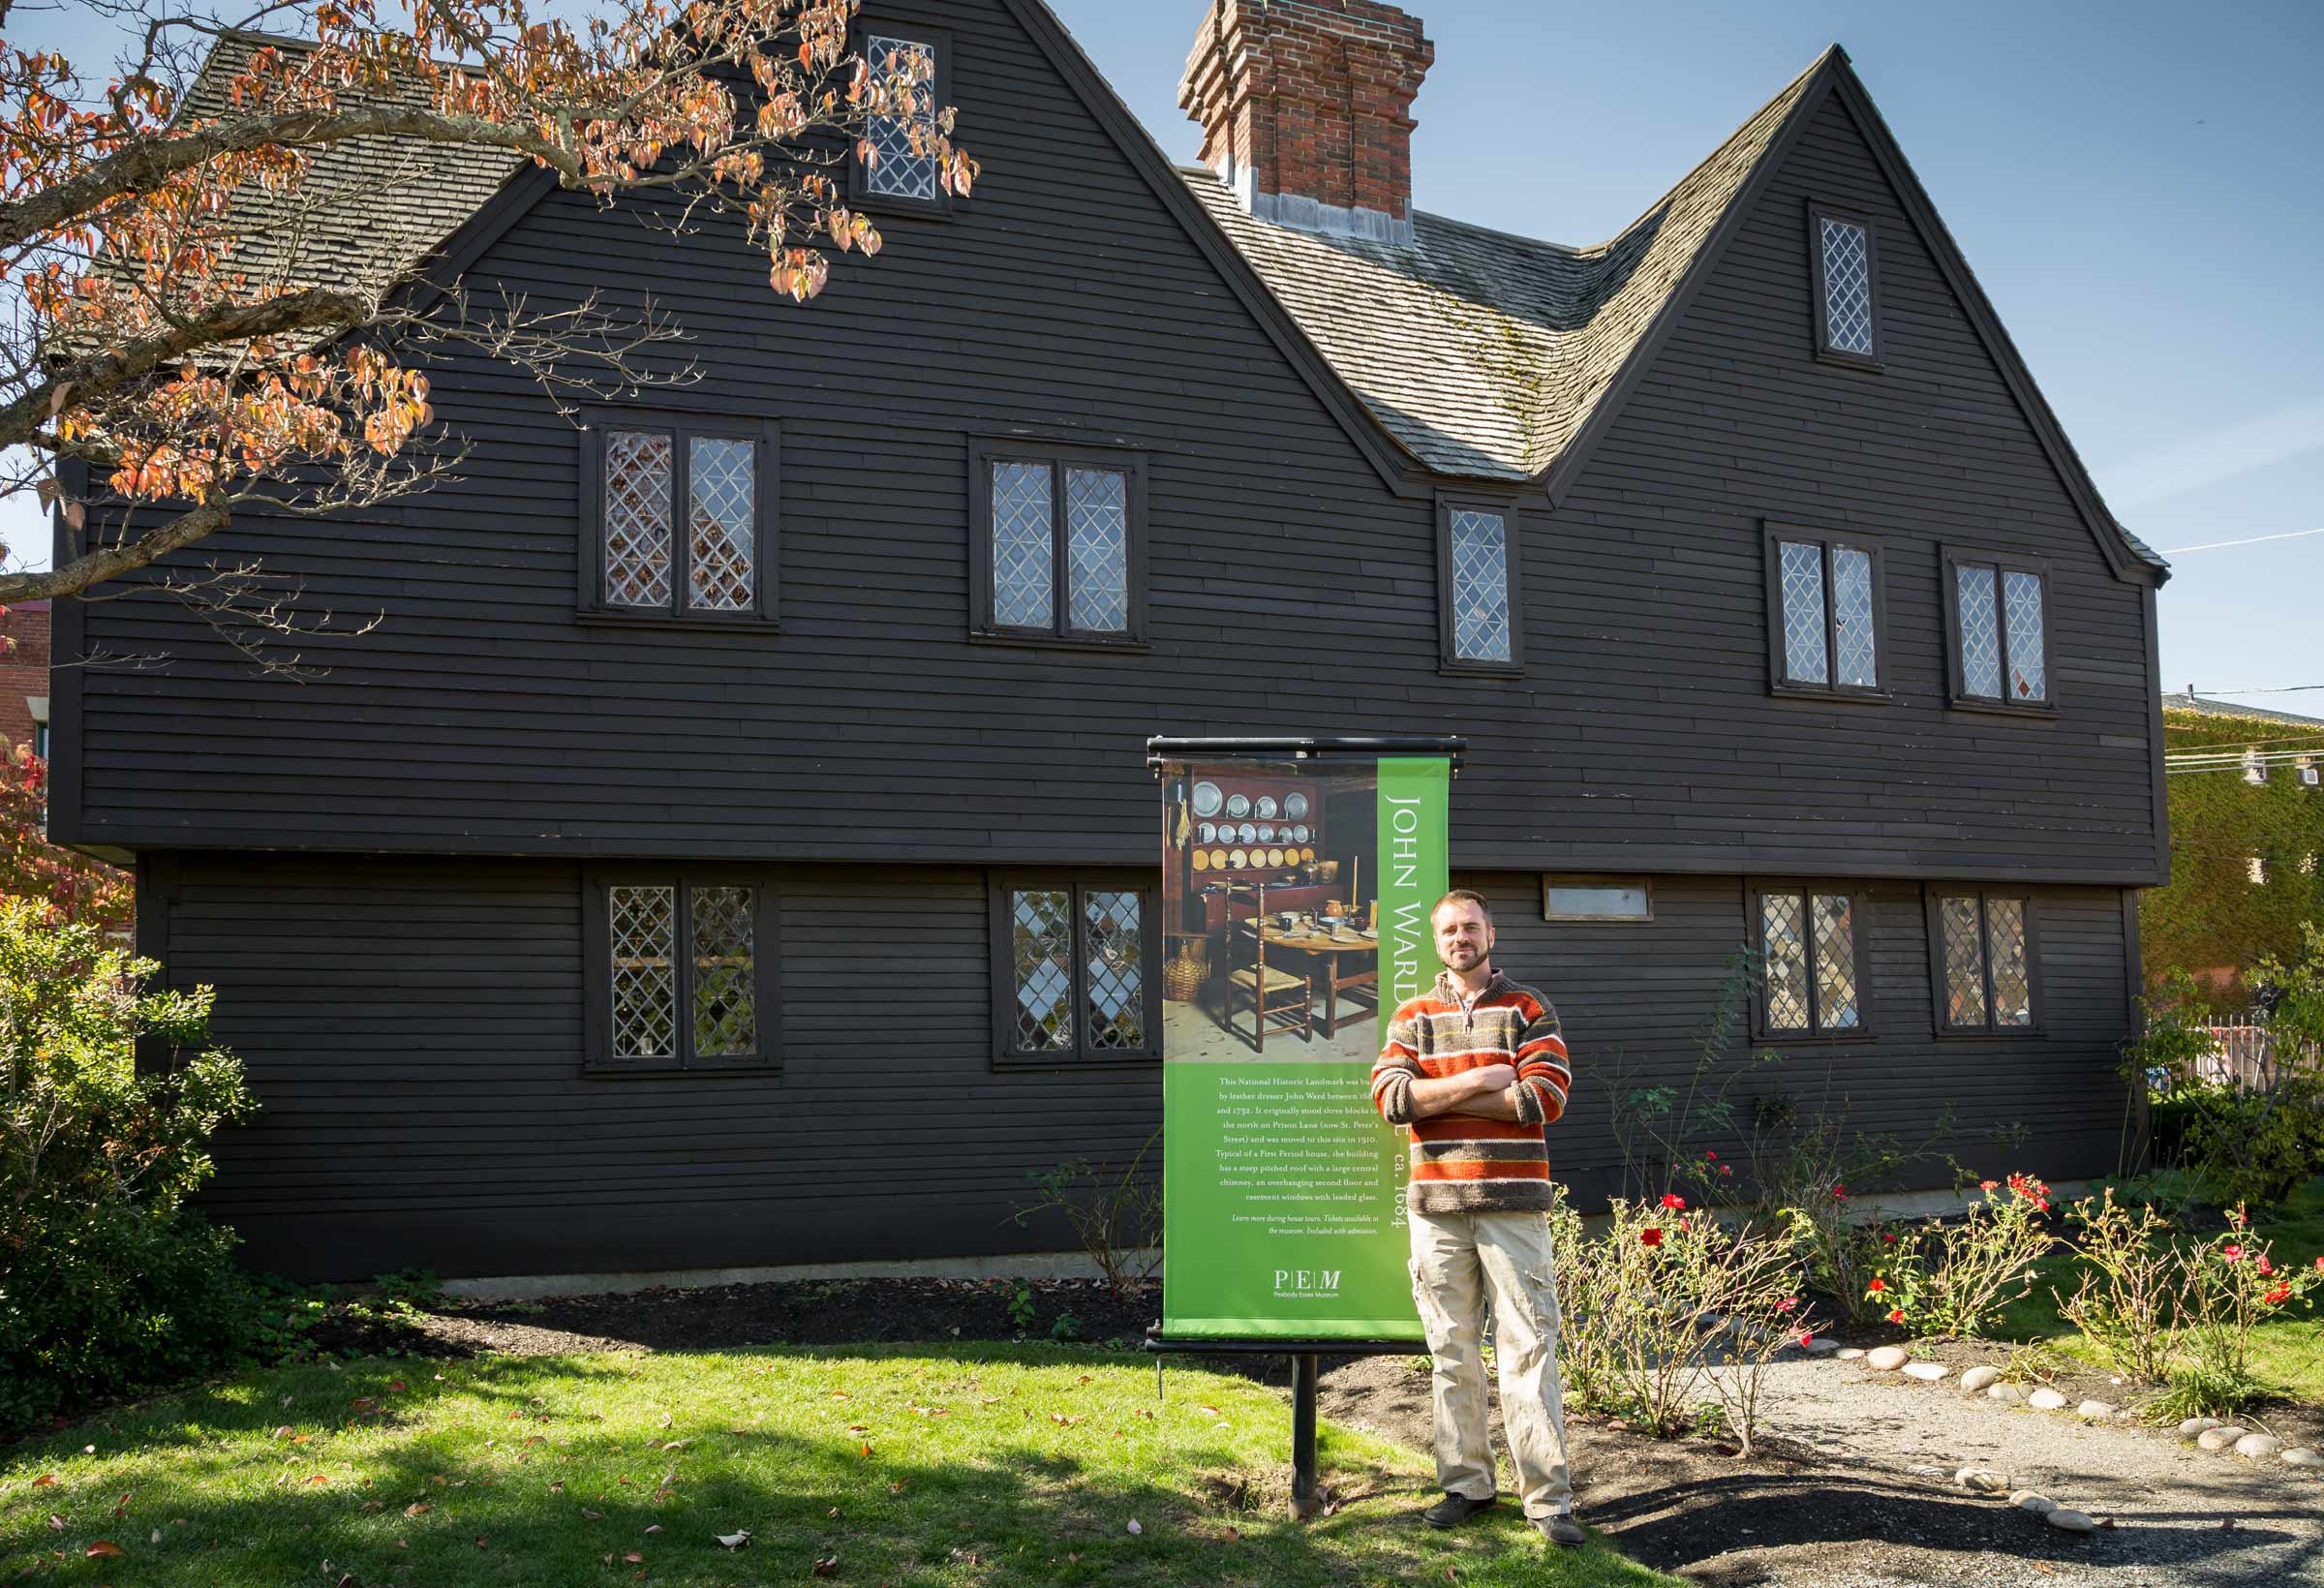 Steven Mallory of the Groundroot Preservation Group in front of the John Ward House. Photo credit Allison White.